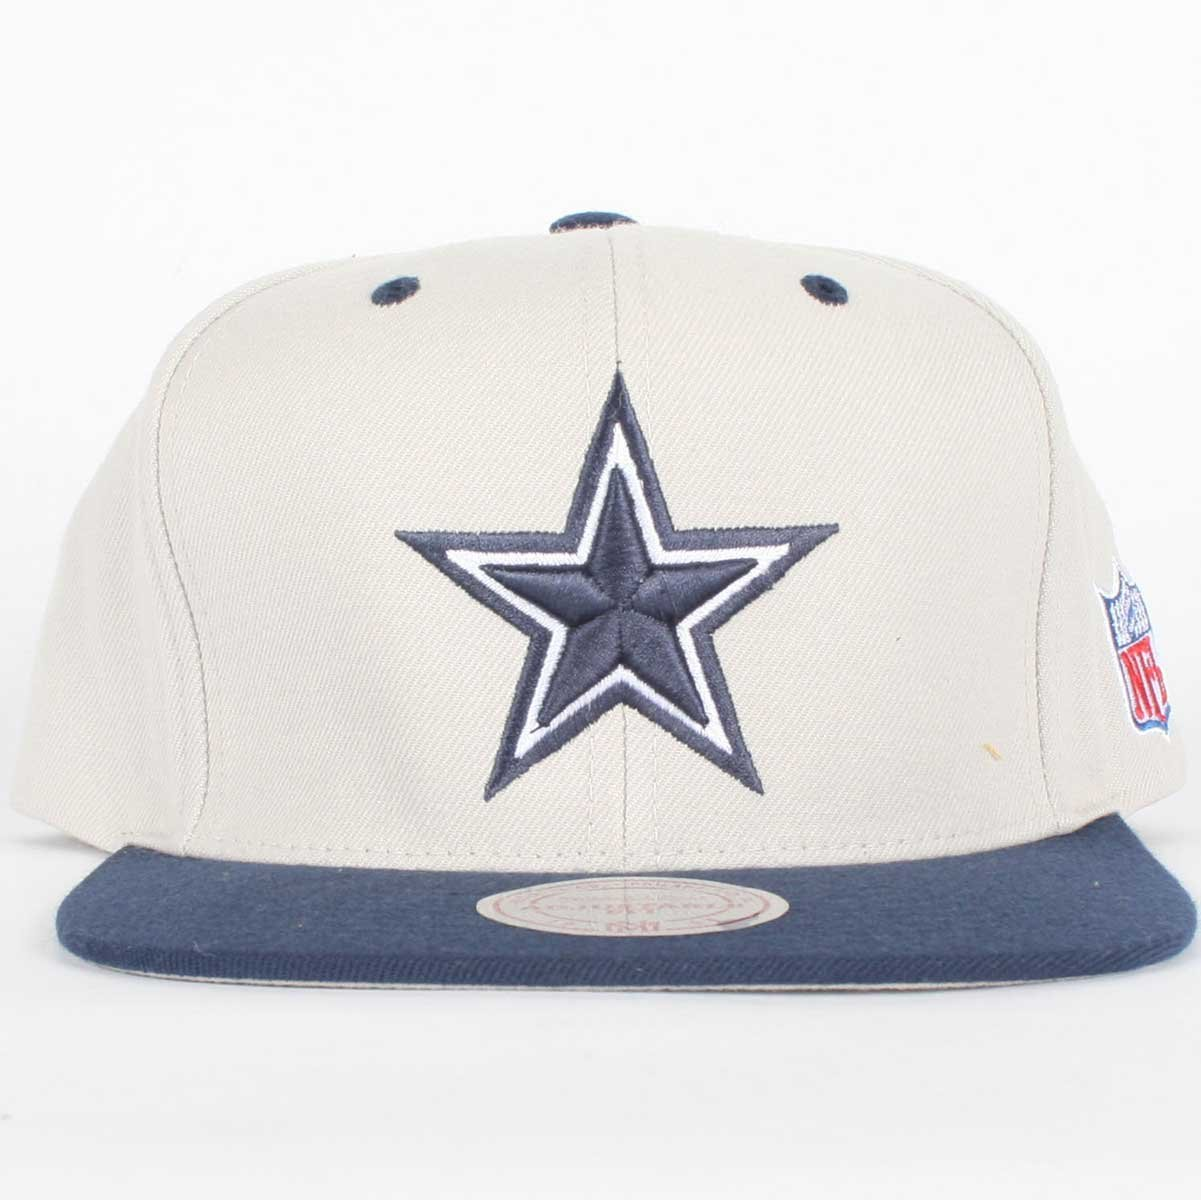 1da02b8d6dd Amazon.com   NFL Mitchell   Ness Dallas Cowboys Gray-Navy Blue Two-Tone  Vintage Snapback Adjustable Hat   Sports Fan Baseball Caps   Sports    Outdoors